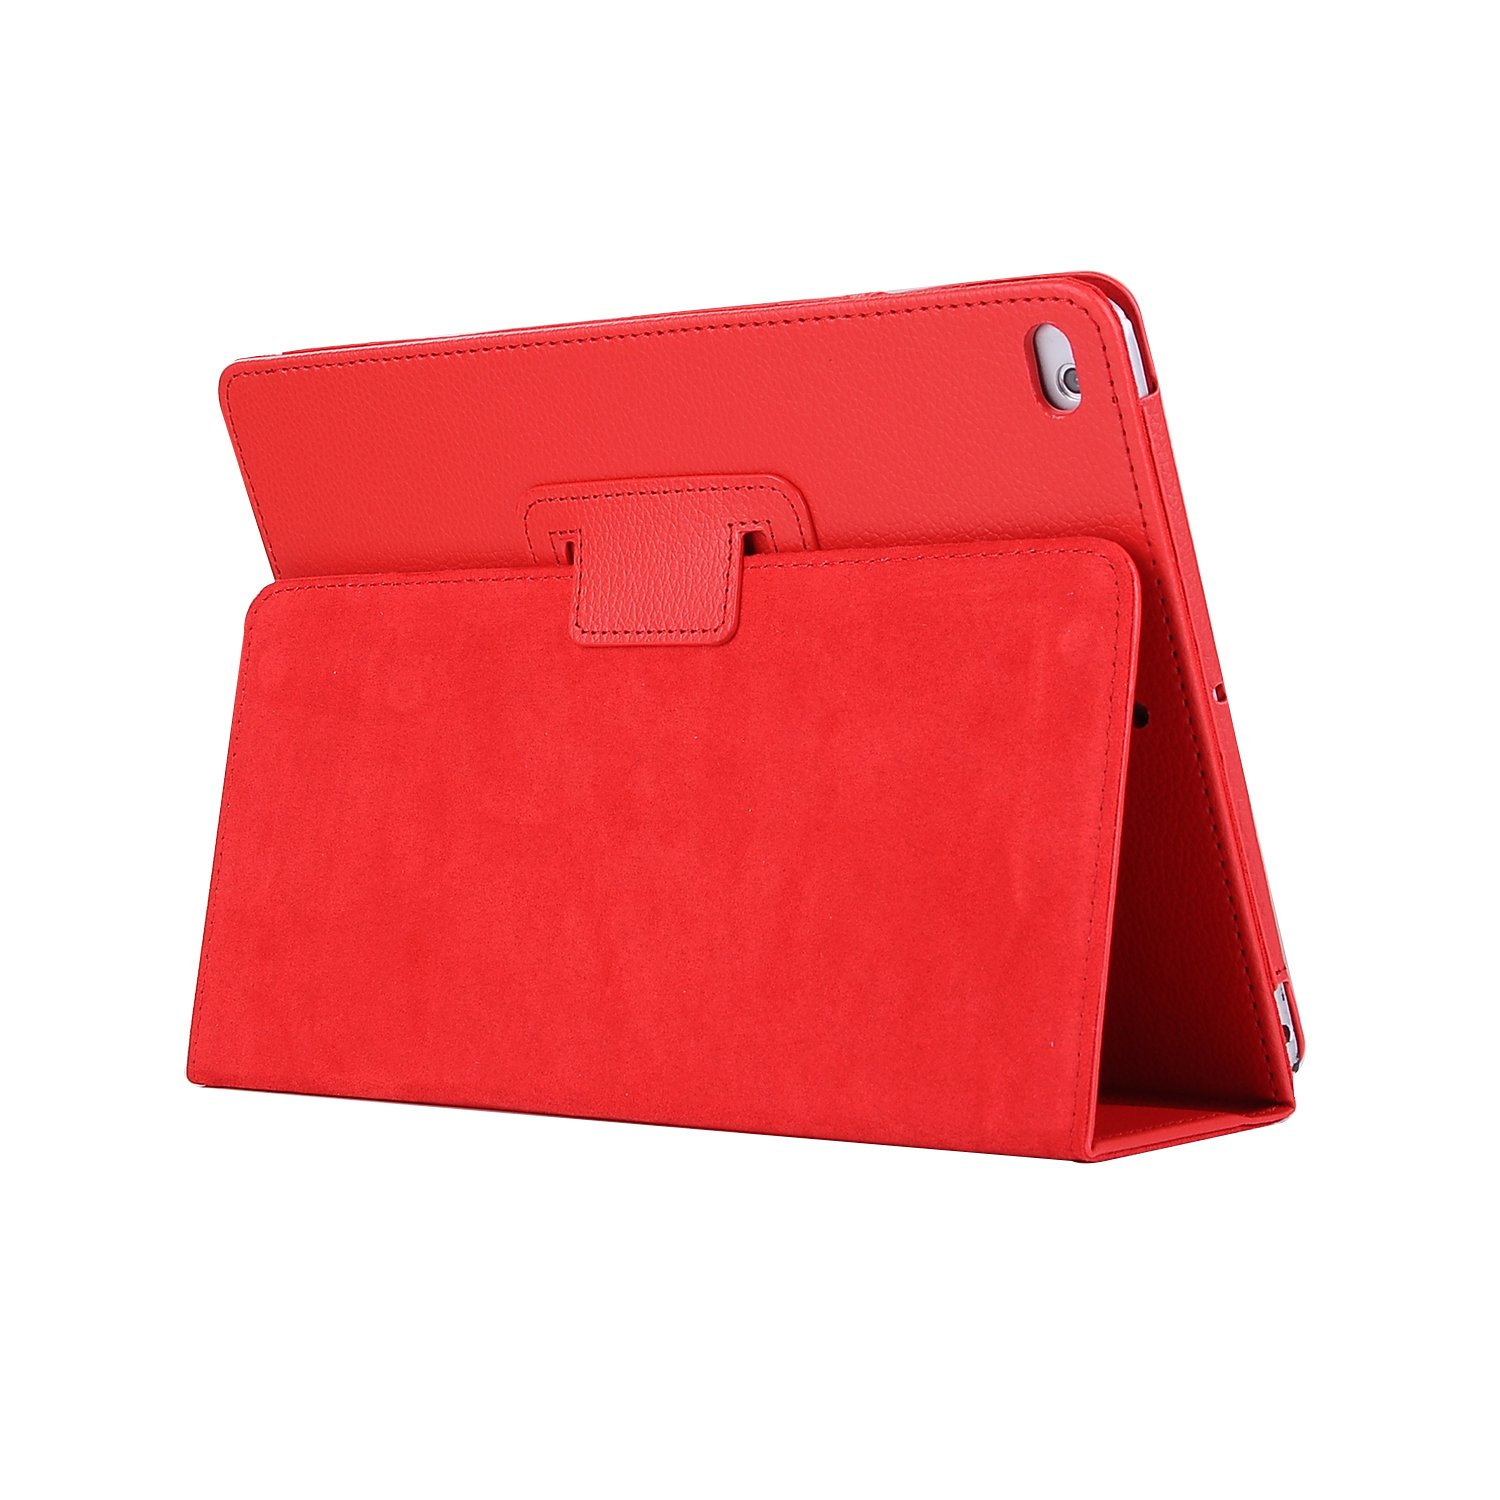 A2232 Tablet for 7th A2197 Funda Foilo-Stand Cover Capa A2200 iPad Apple Case